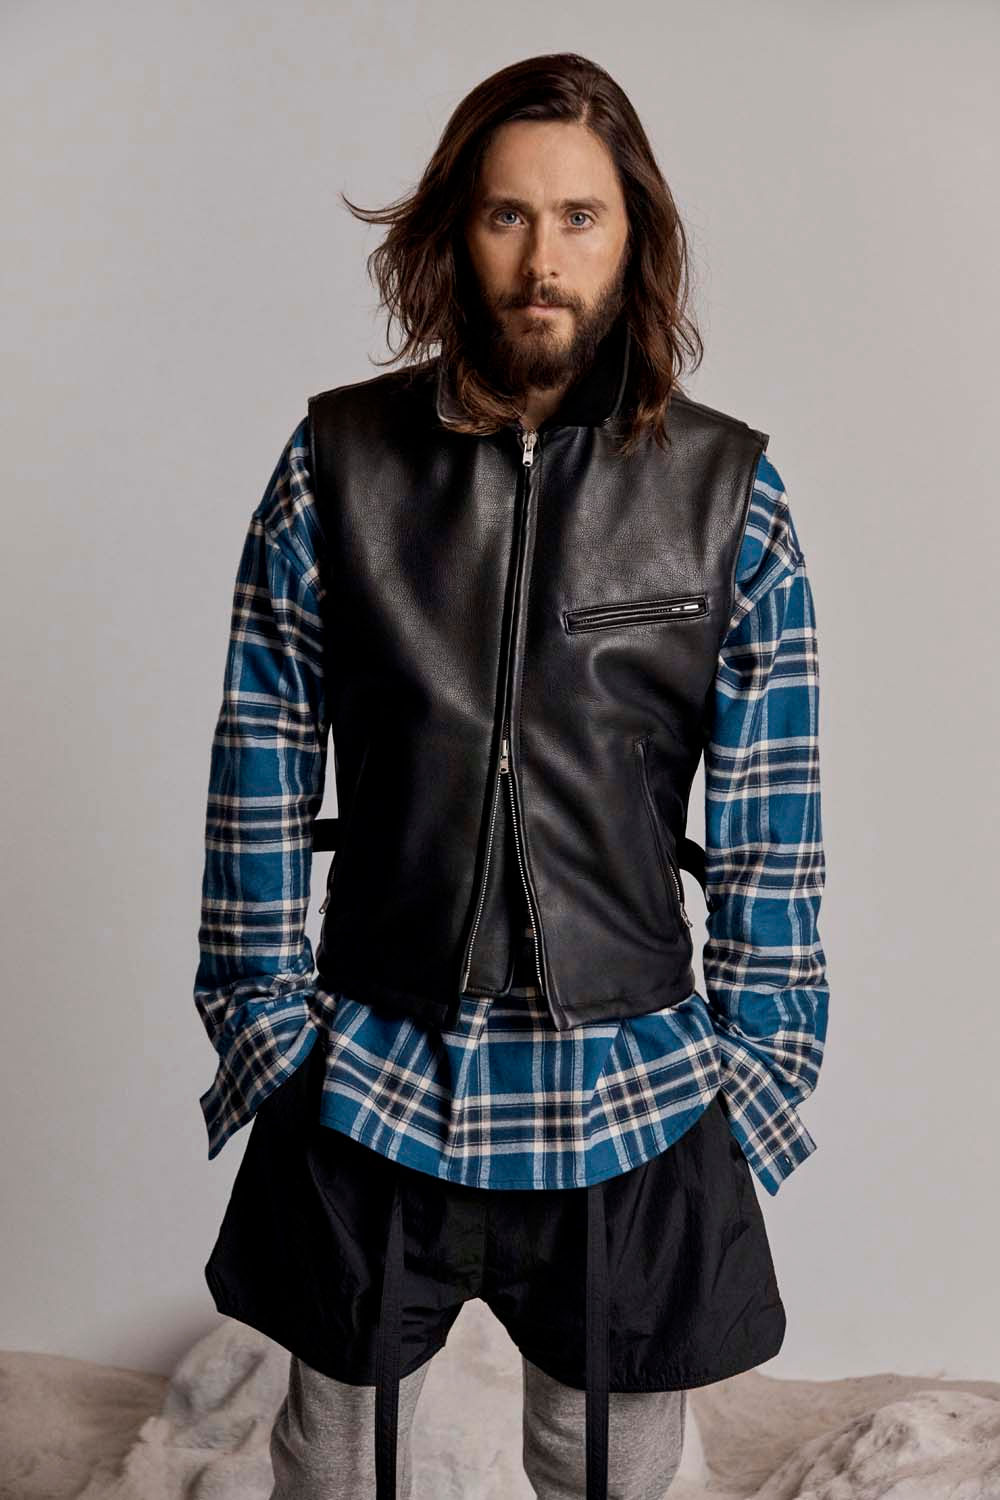 https_%2F%2Fhypebeast.com%2Fimage%2F2018%2F09%2Ffear-of-god-6-sixth-collection-jared-leto-nike-30.jpg